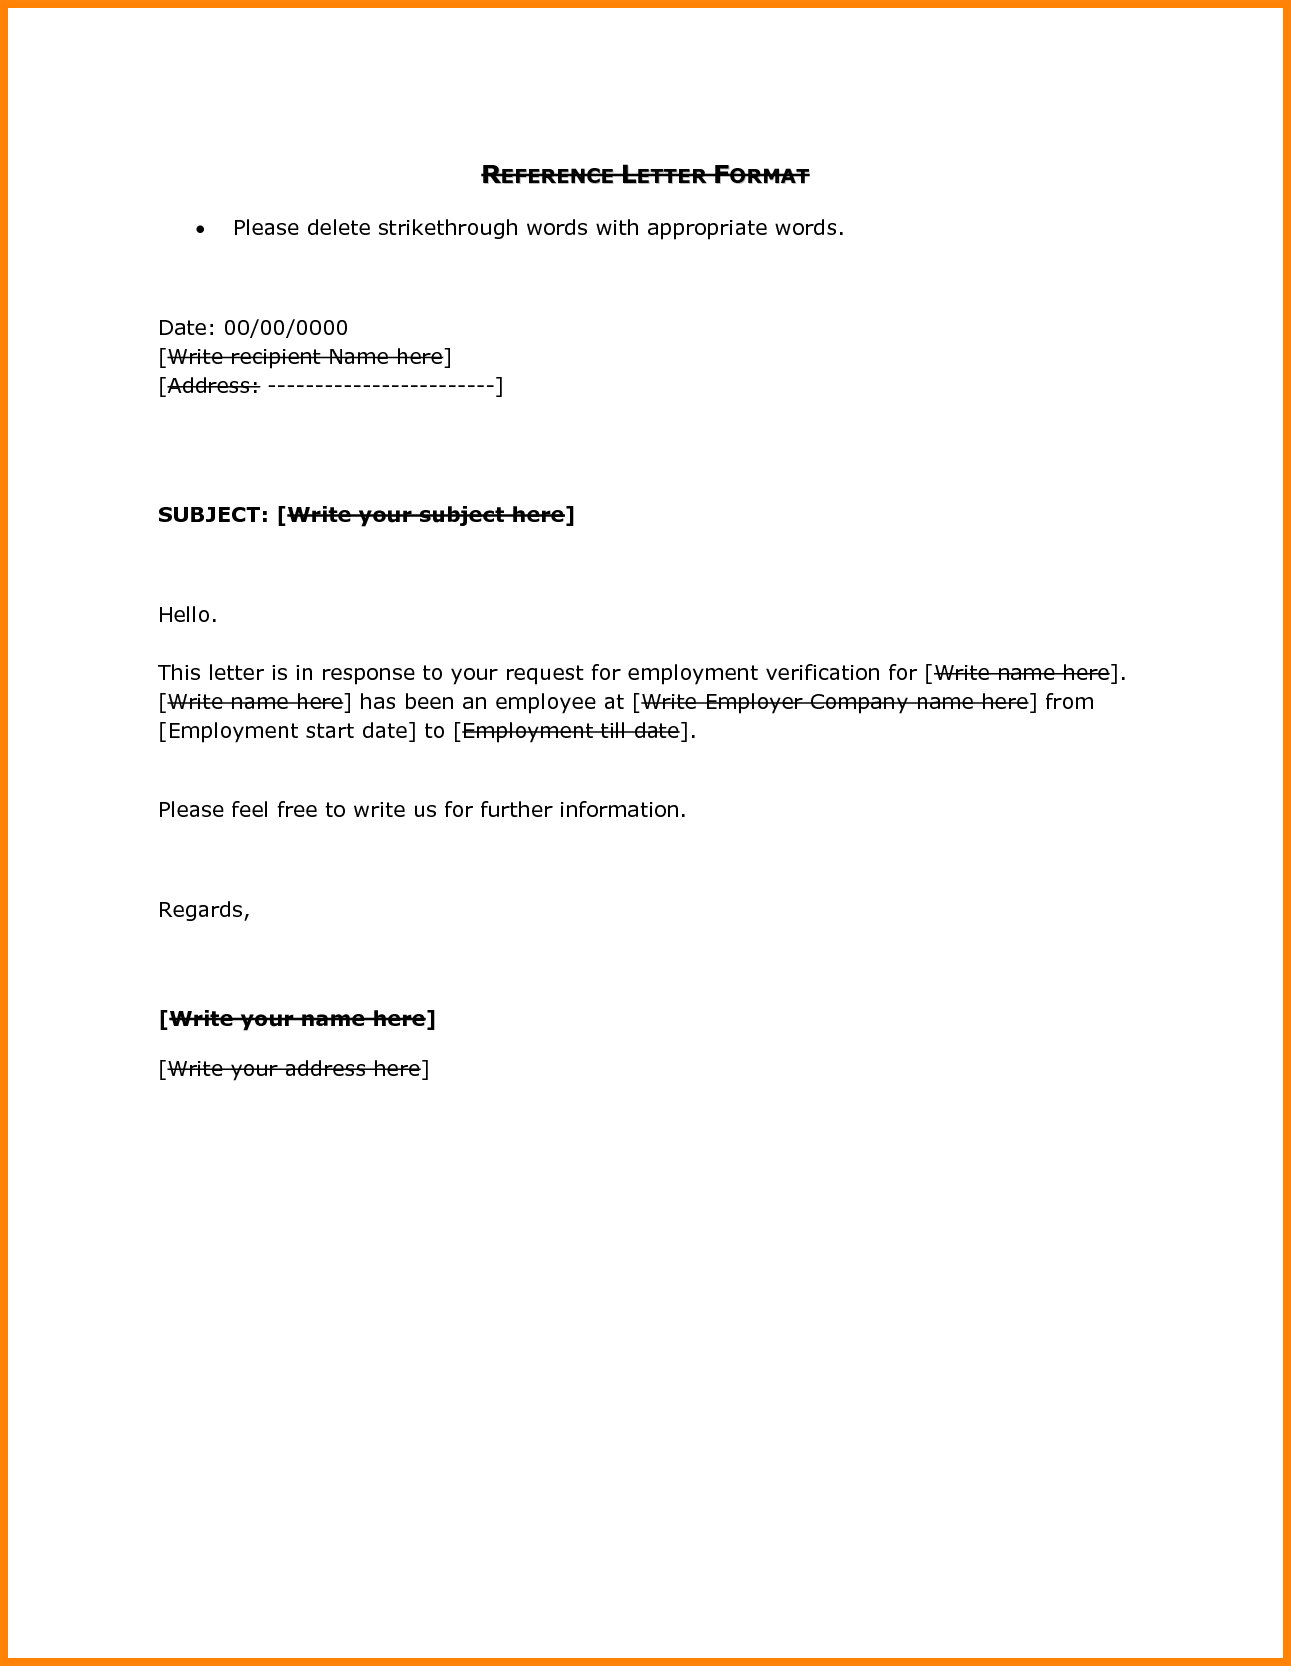 Letter Template Sample Employee Reference Format Balance Sheet